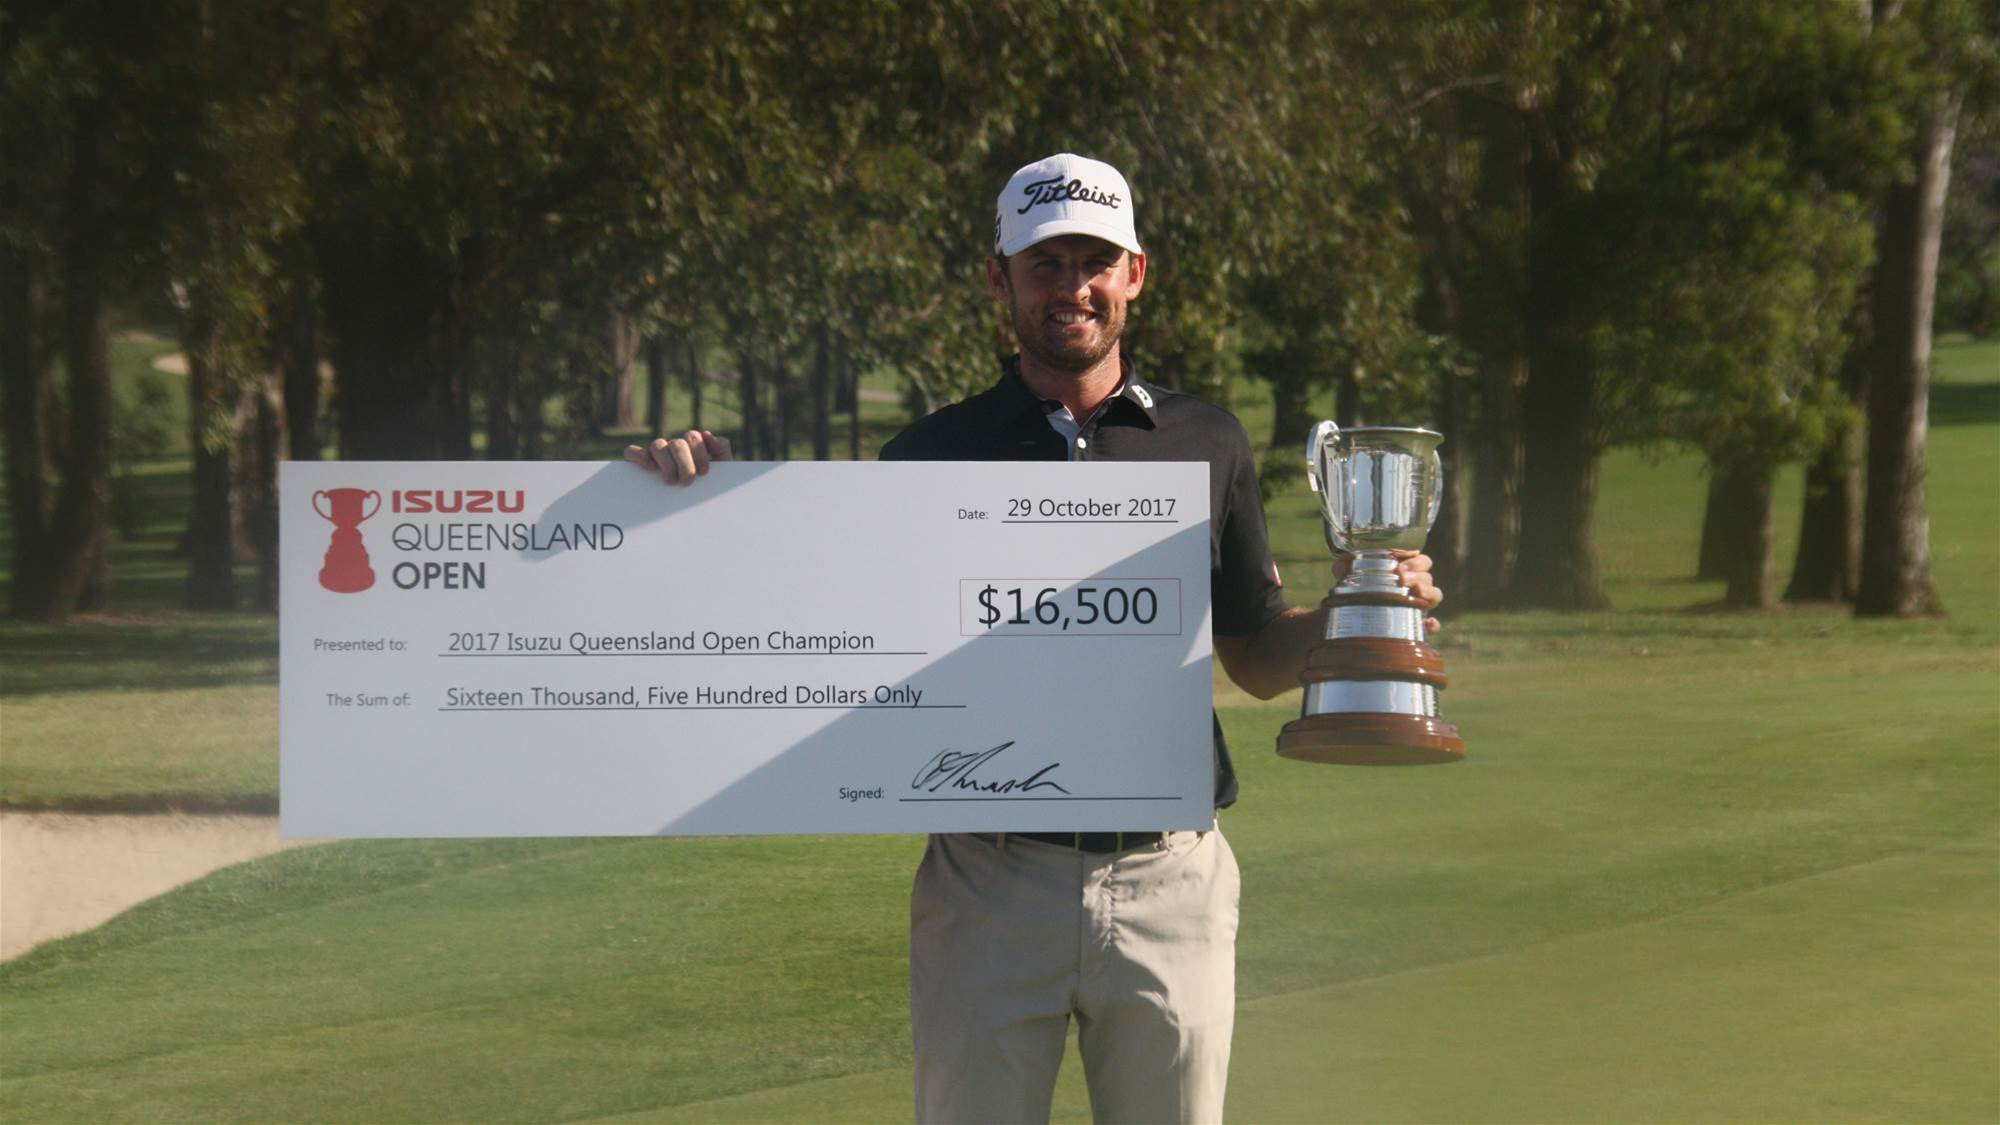 QLD OPEN: Sim secures first Aussie win